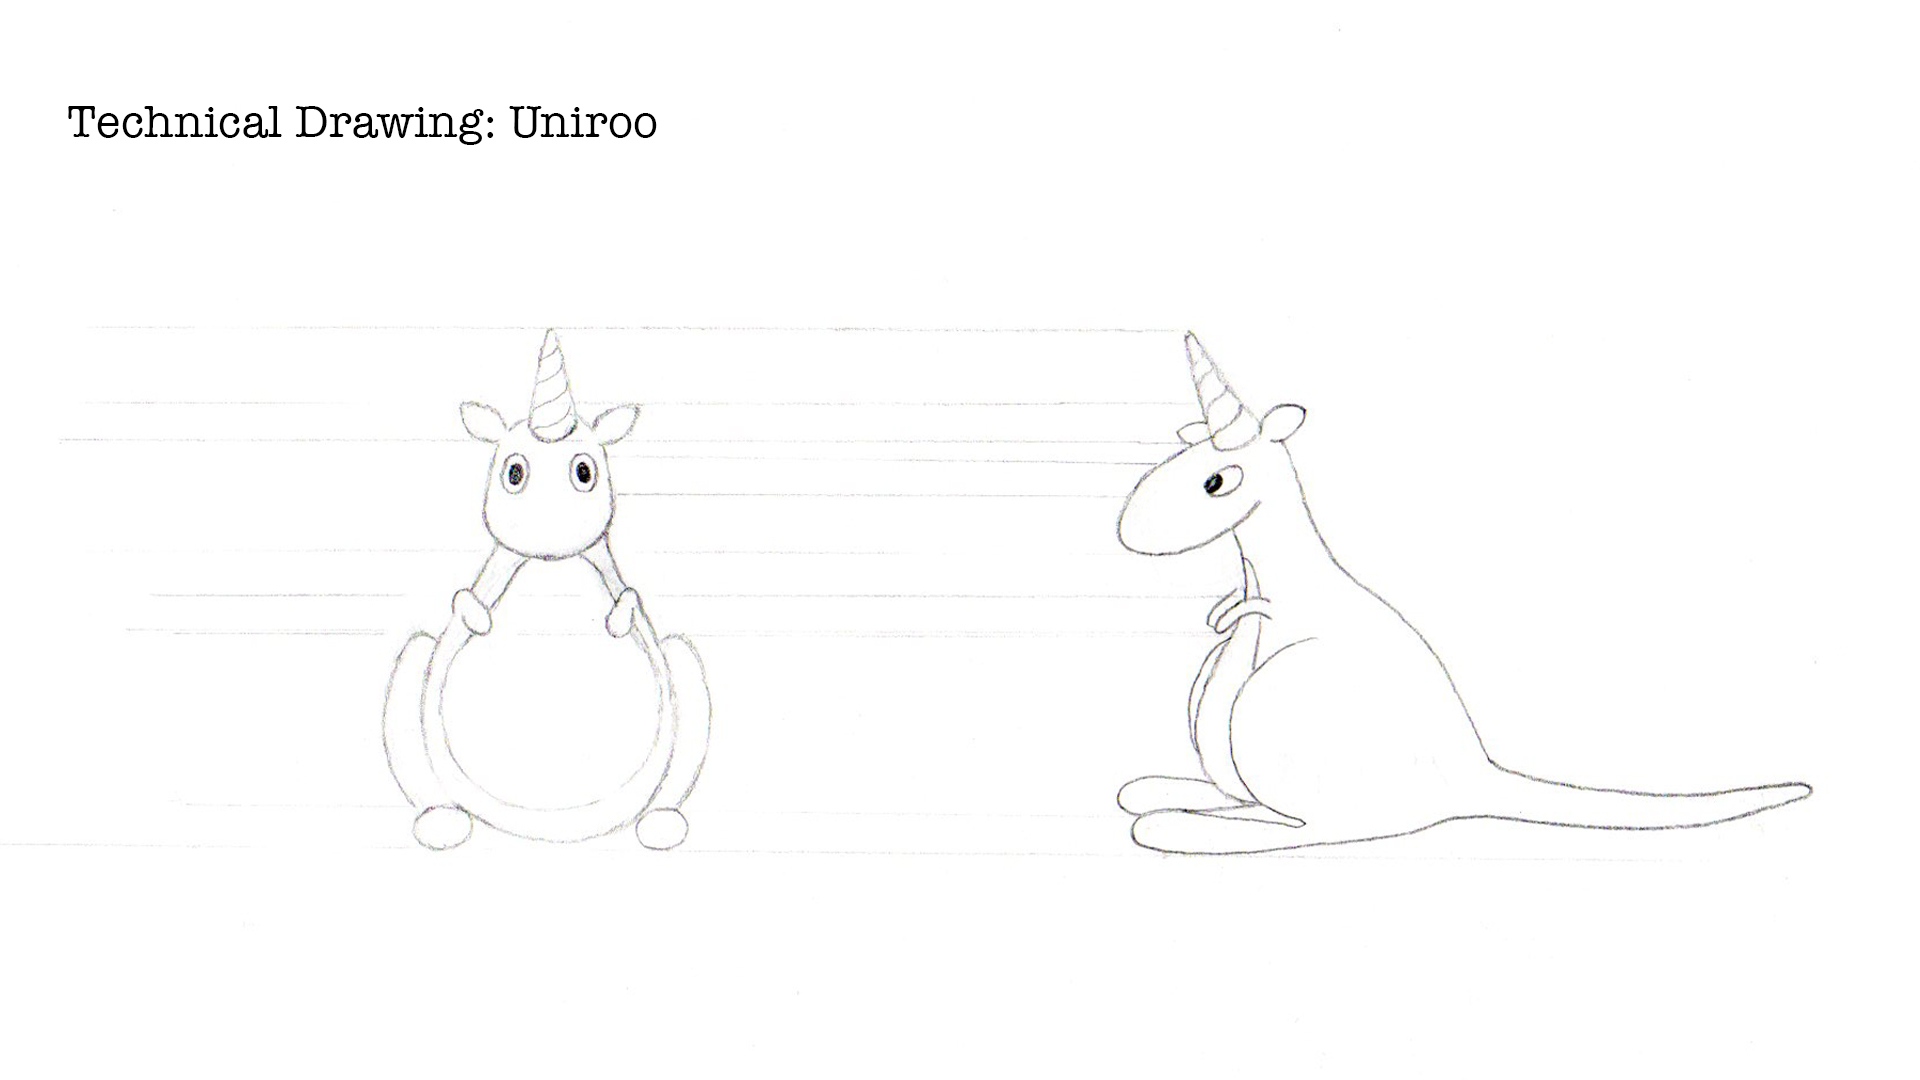 technical drawing of uniroo (2017)